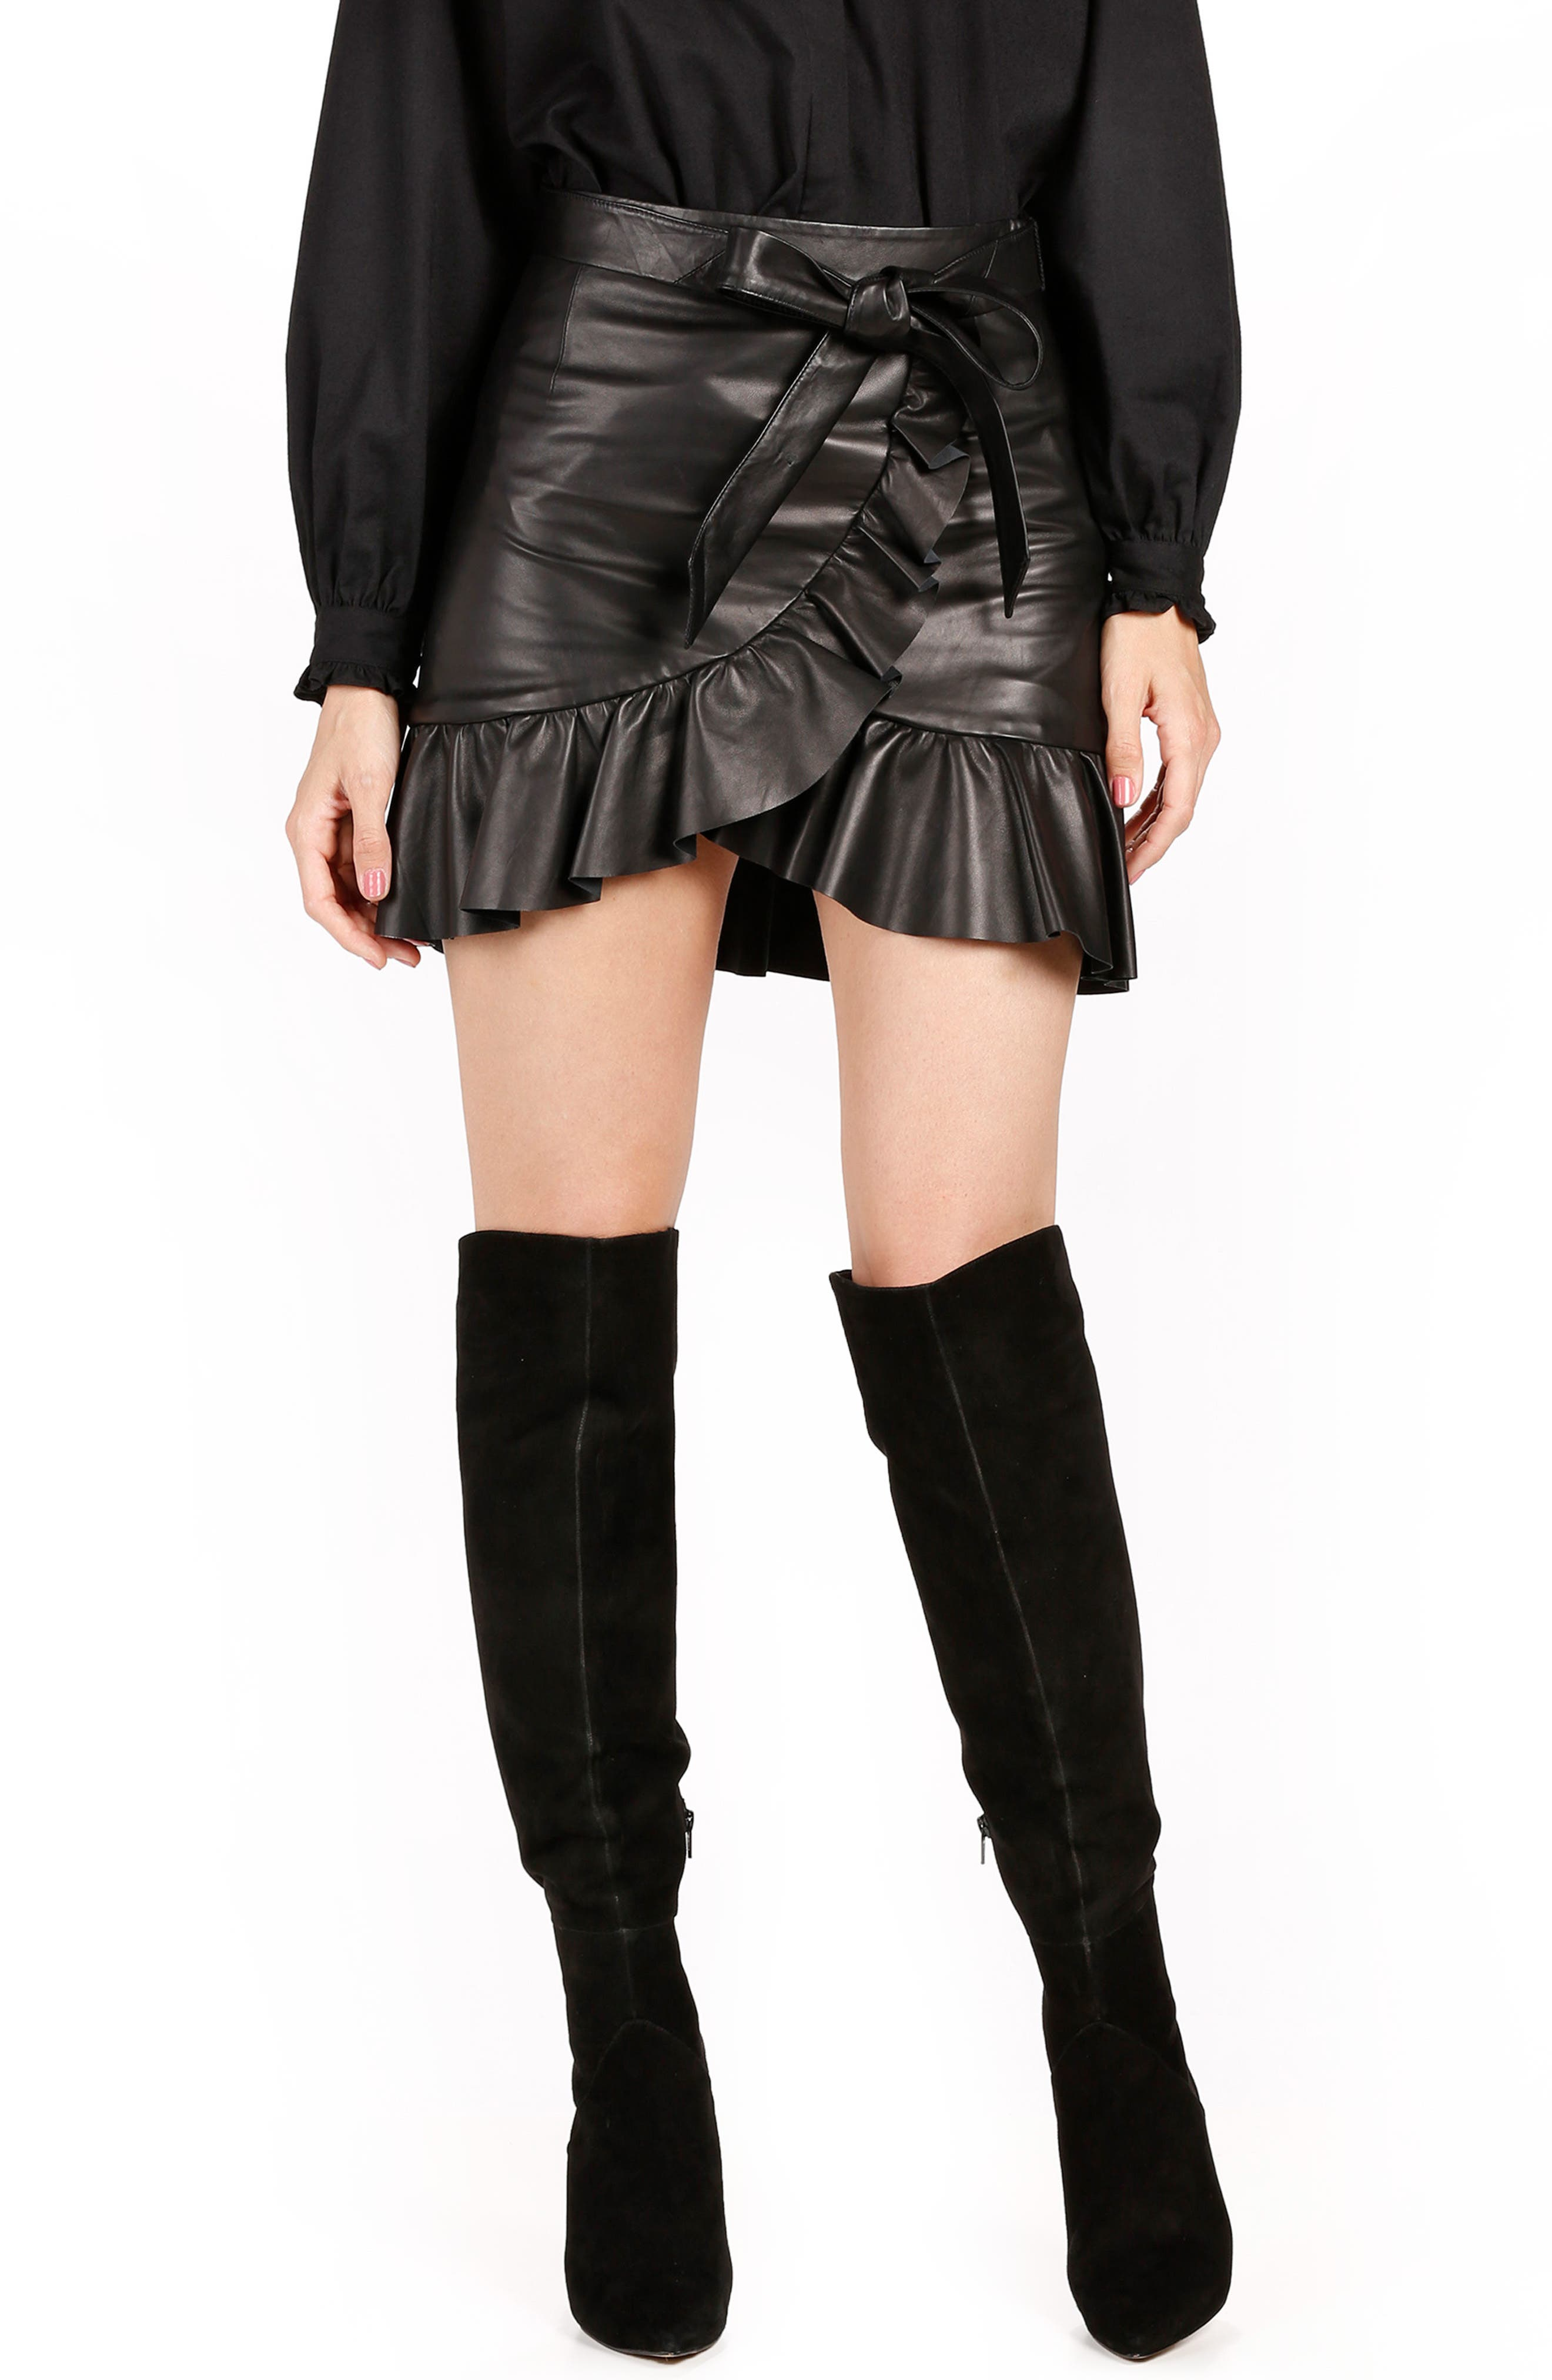 Nivelle Ruffle Leather Skirt,                             Main thumbnail 1, color,                             001